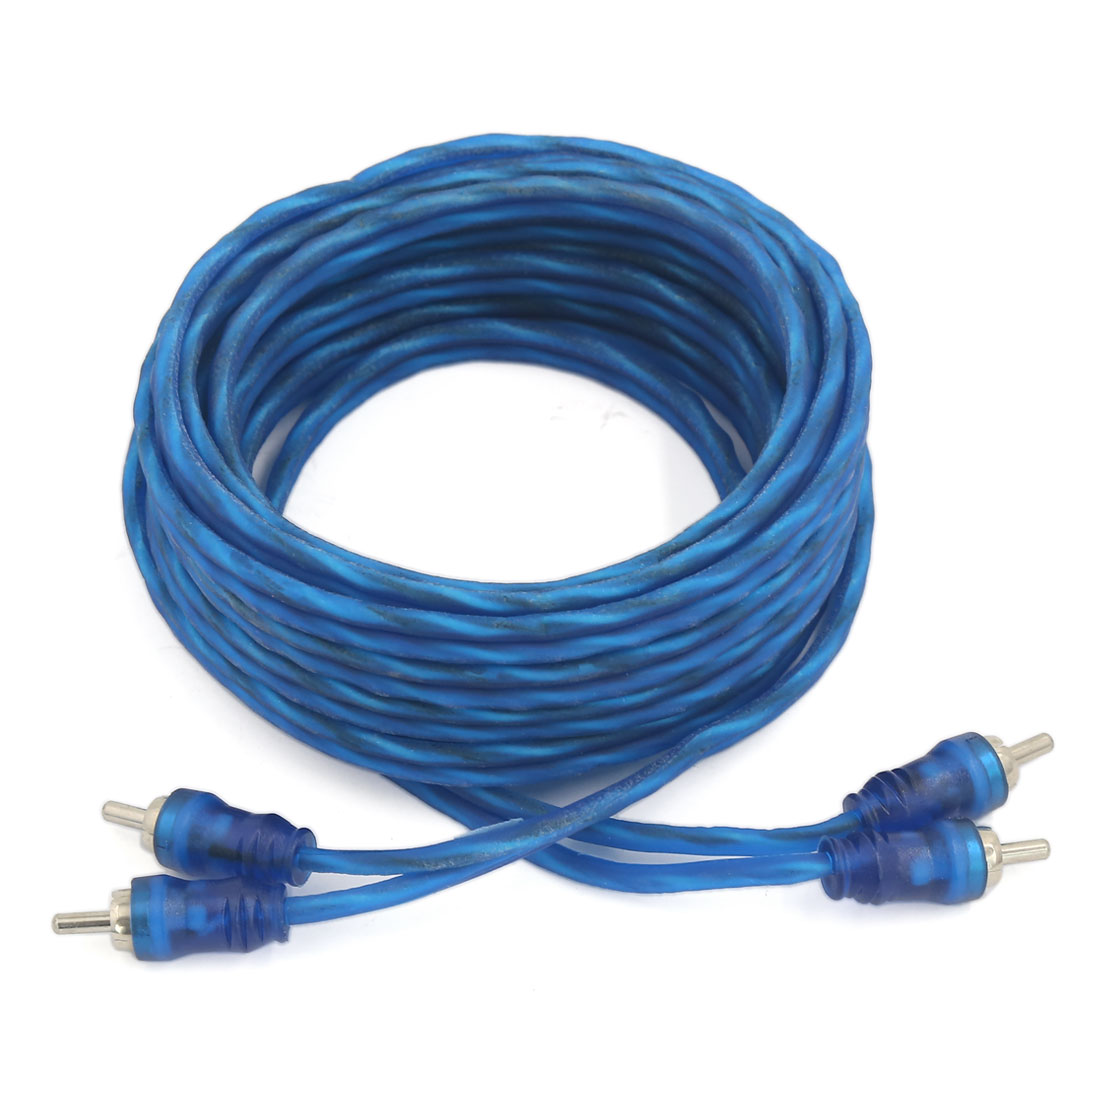 4.5M 2 RCA Audio Video System AV Extension Cable Male to Male Cord Wire Blue